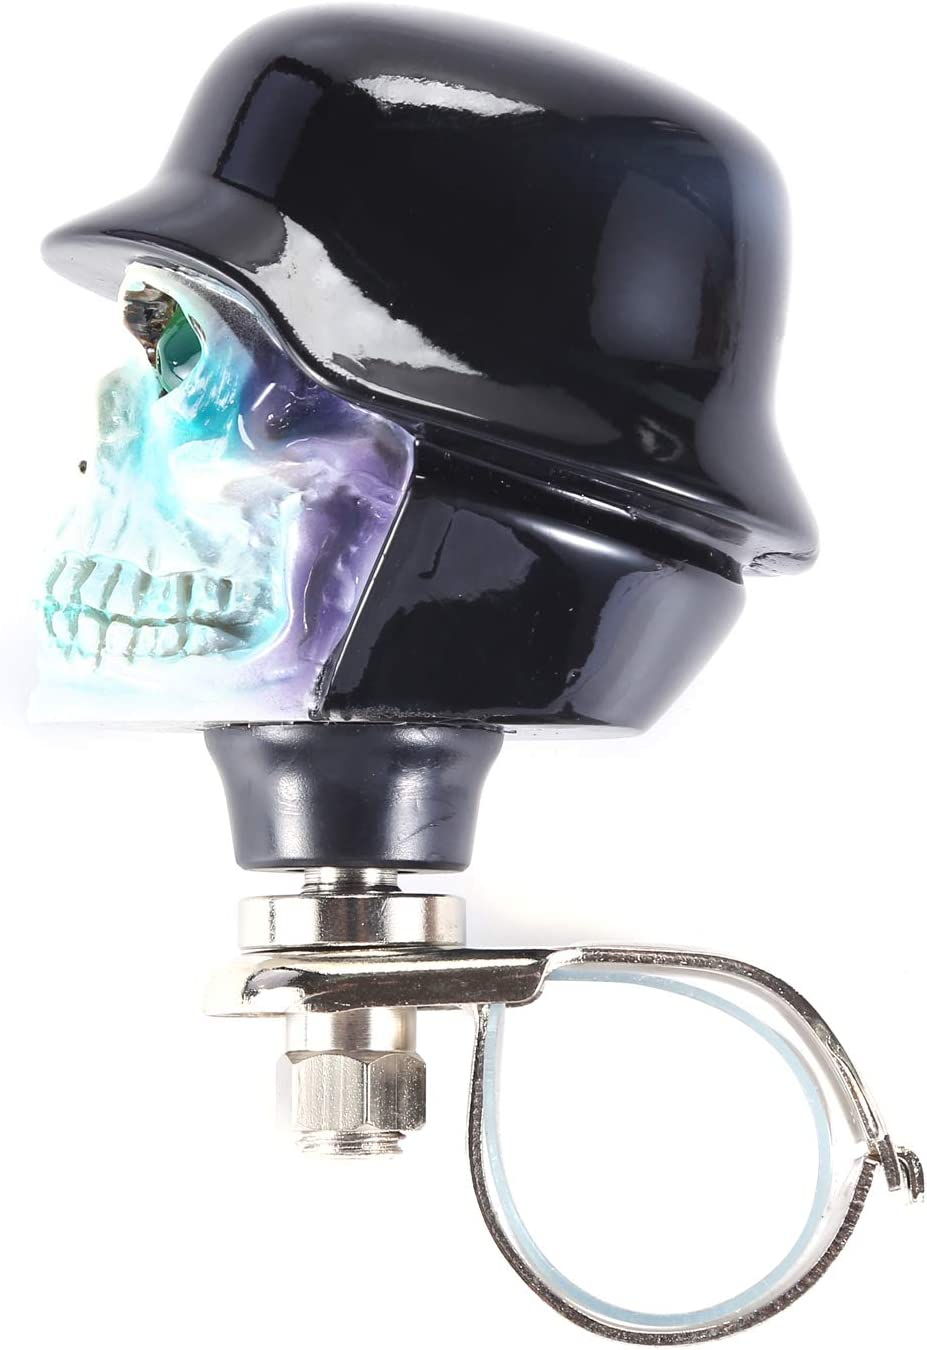 Black Bashineng Car Auto Steering Knobs Soldier Skull Power Handle Suicide Control Spinner for Vehicle Wheel